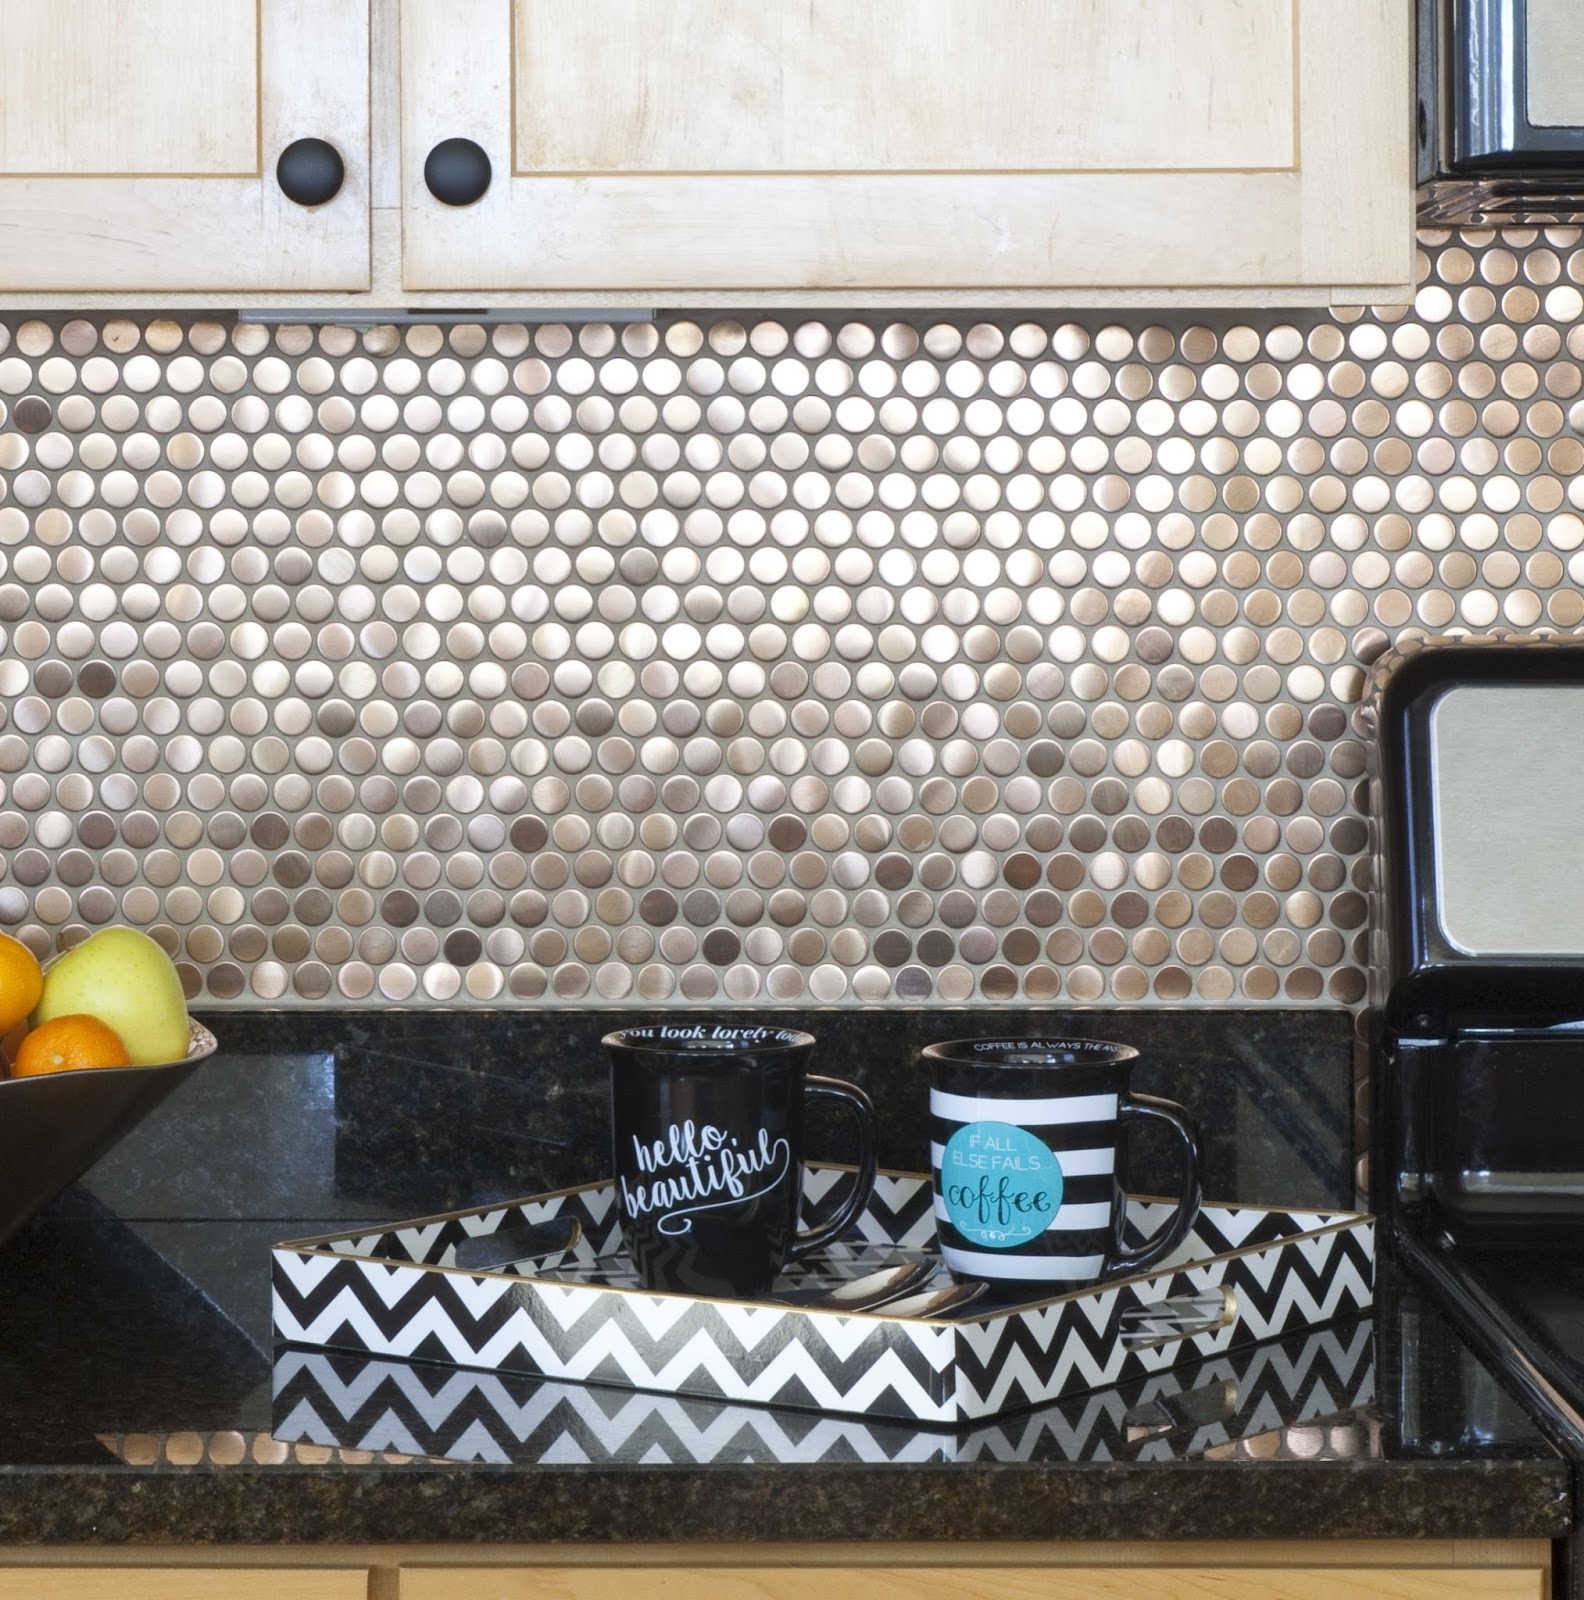 Copper penny tile backsplash designed by Robin LaMonte of Rooms Revamped Interior Design